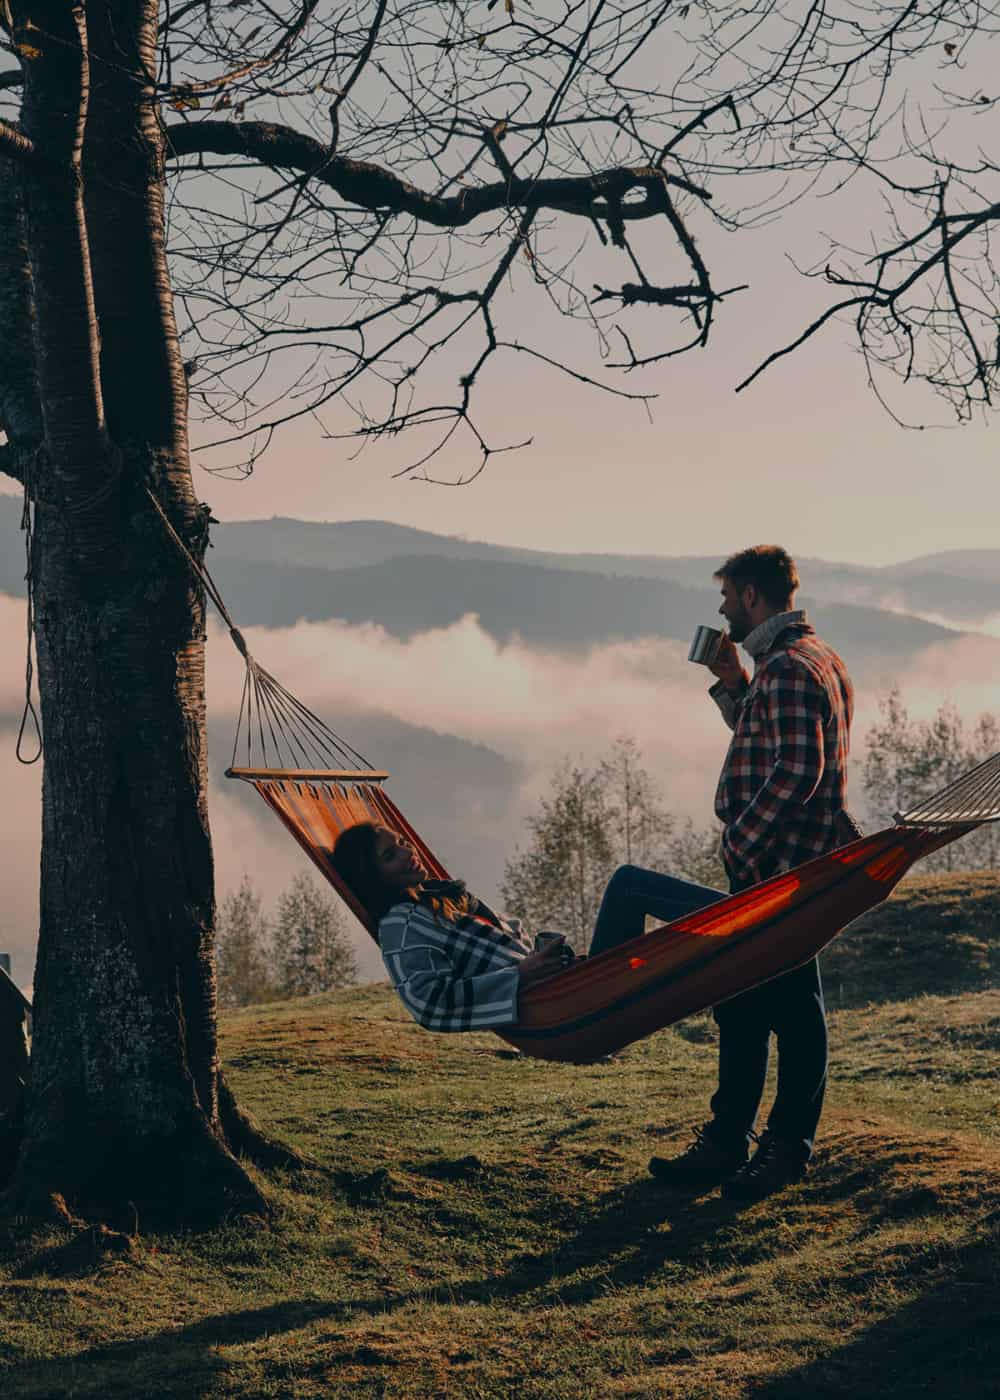 Couple camping with a hammock